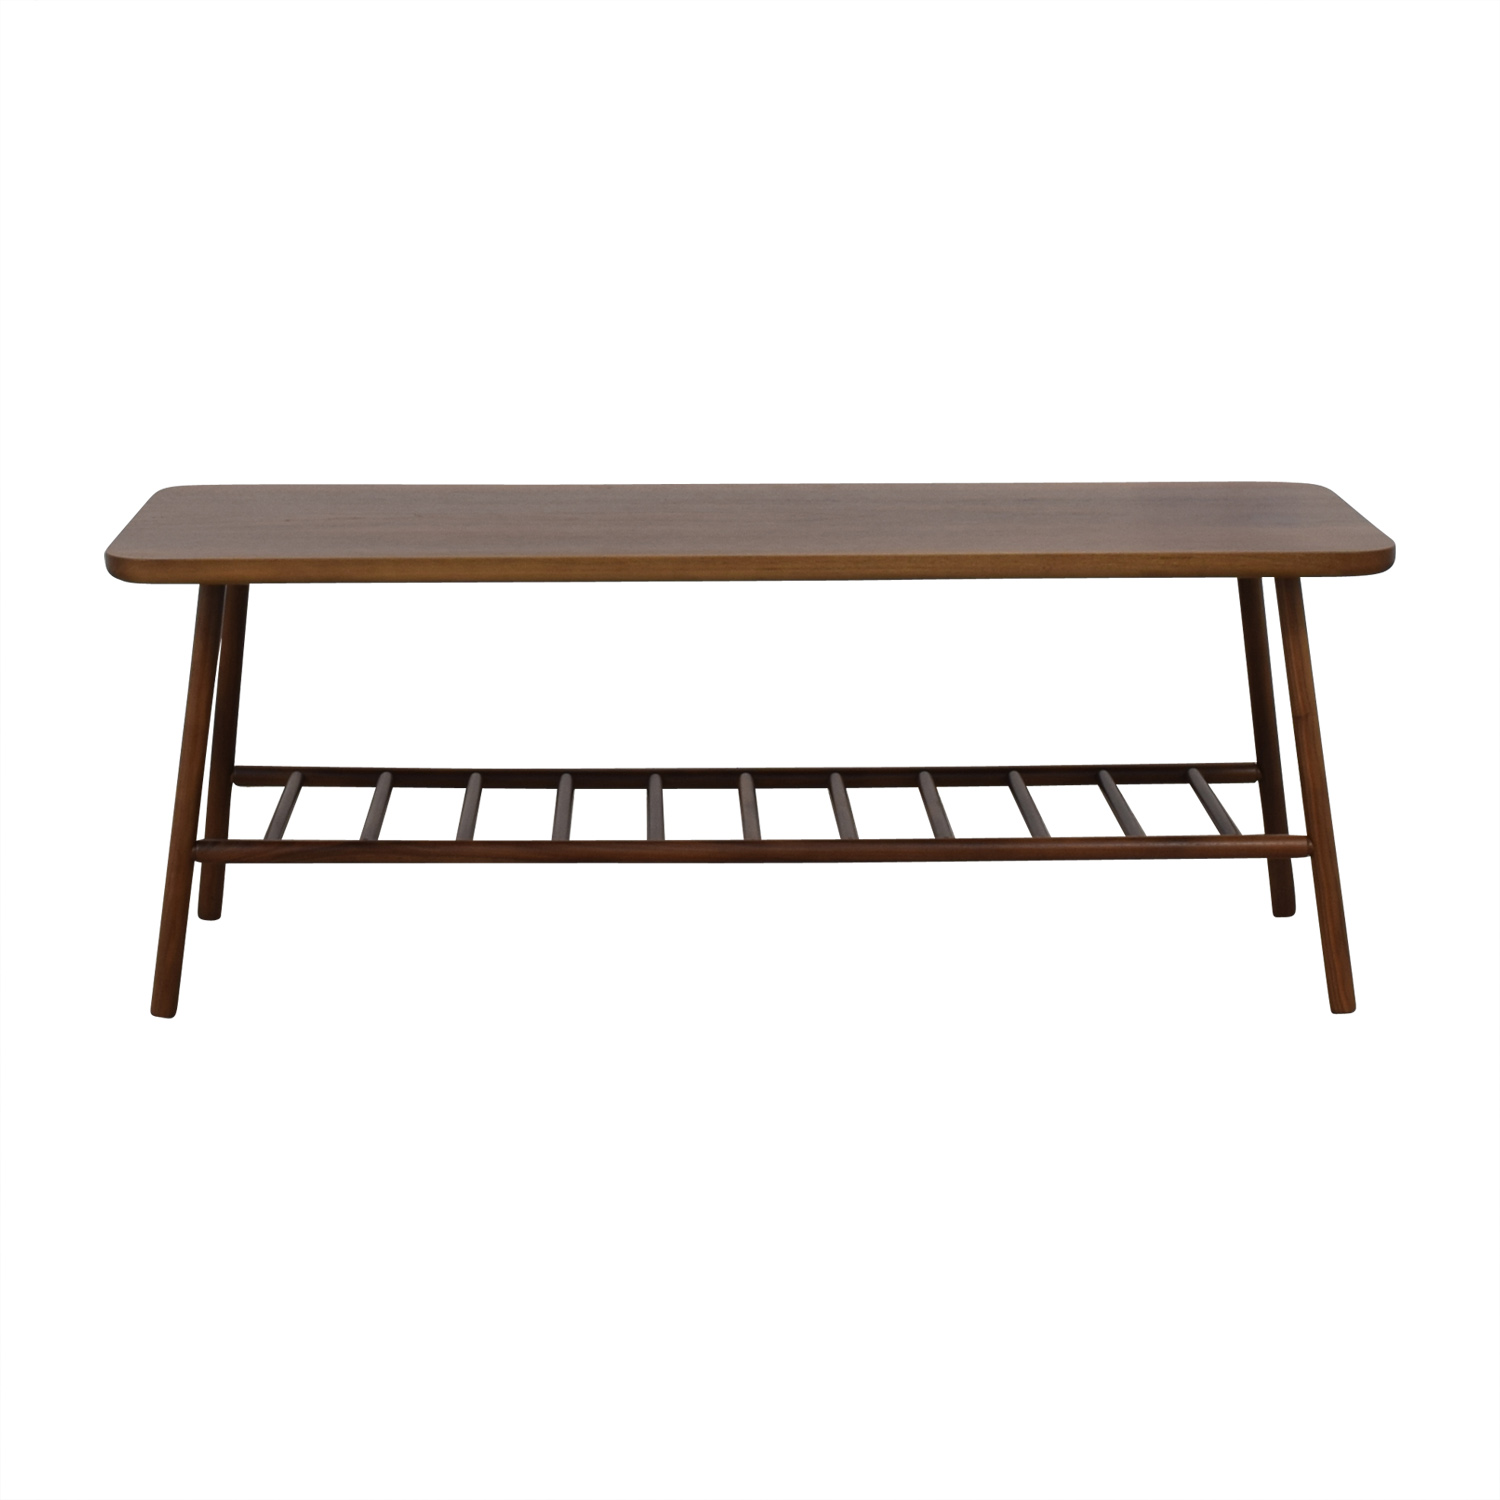 Hedge House Furniture Hedge House Furniture Walnut Coffee Table discount